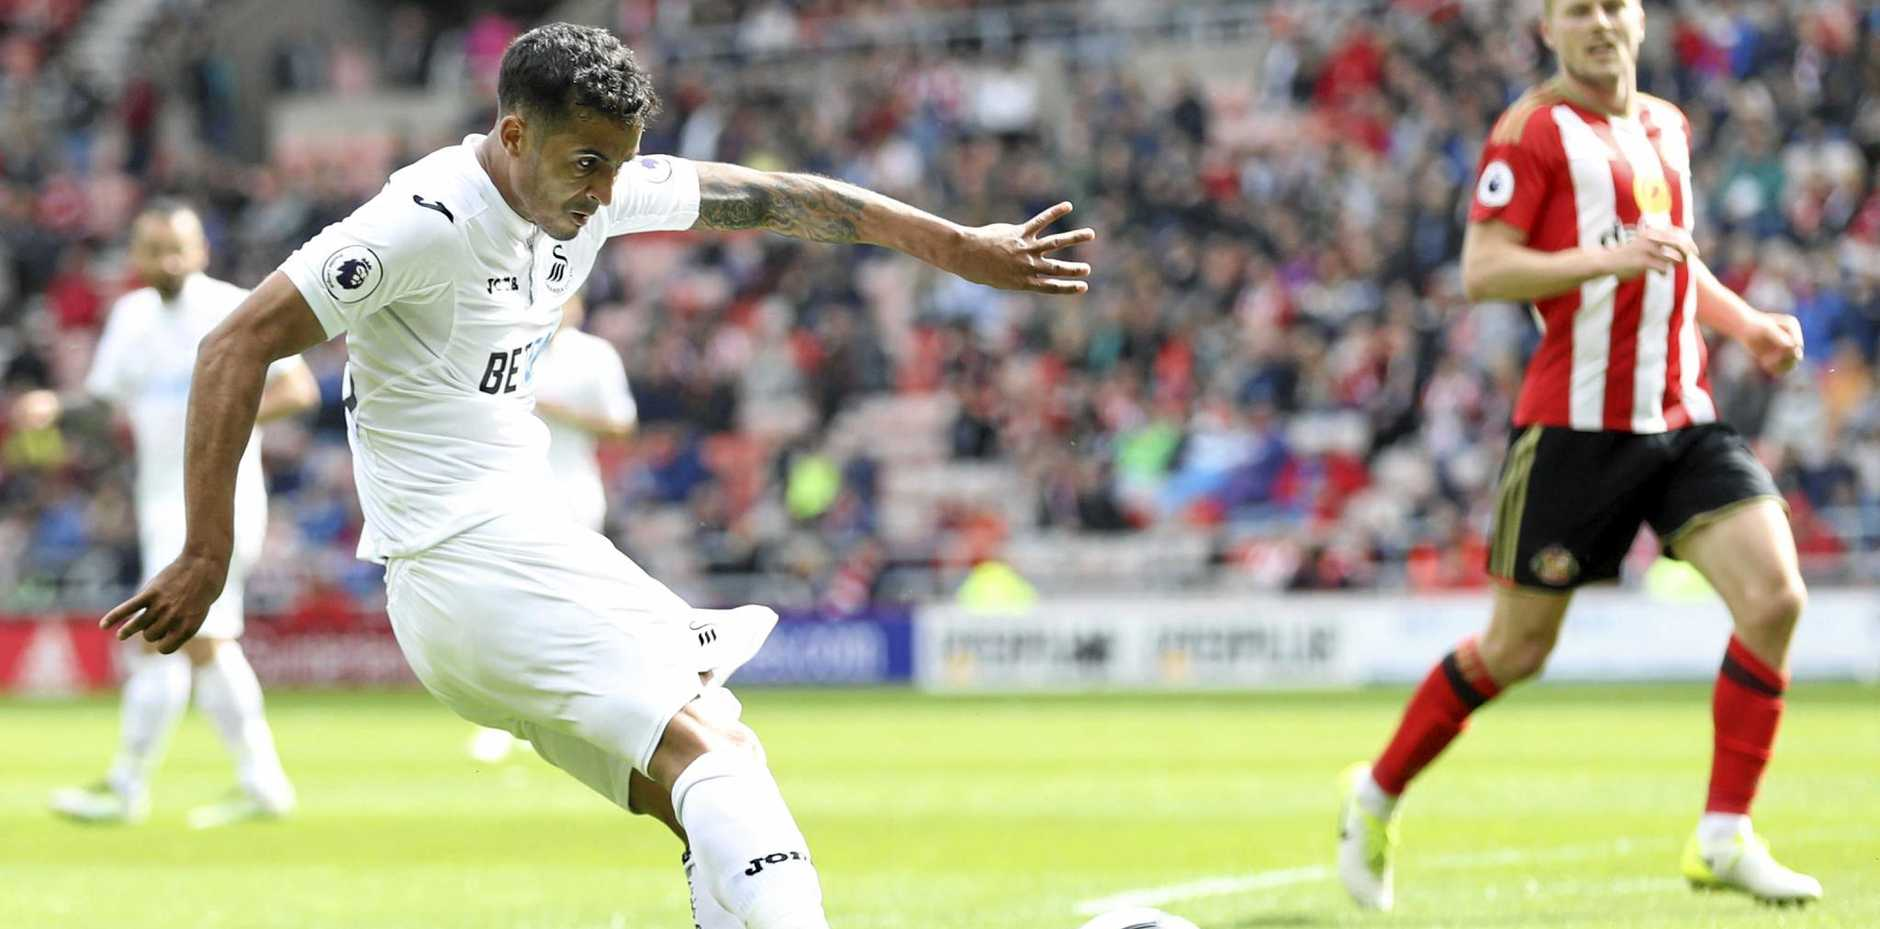 Swansea City's Kyle Naughton scores his side's second goal in the 2-0 win at Sunderland.